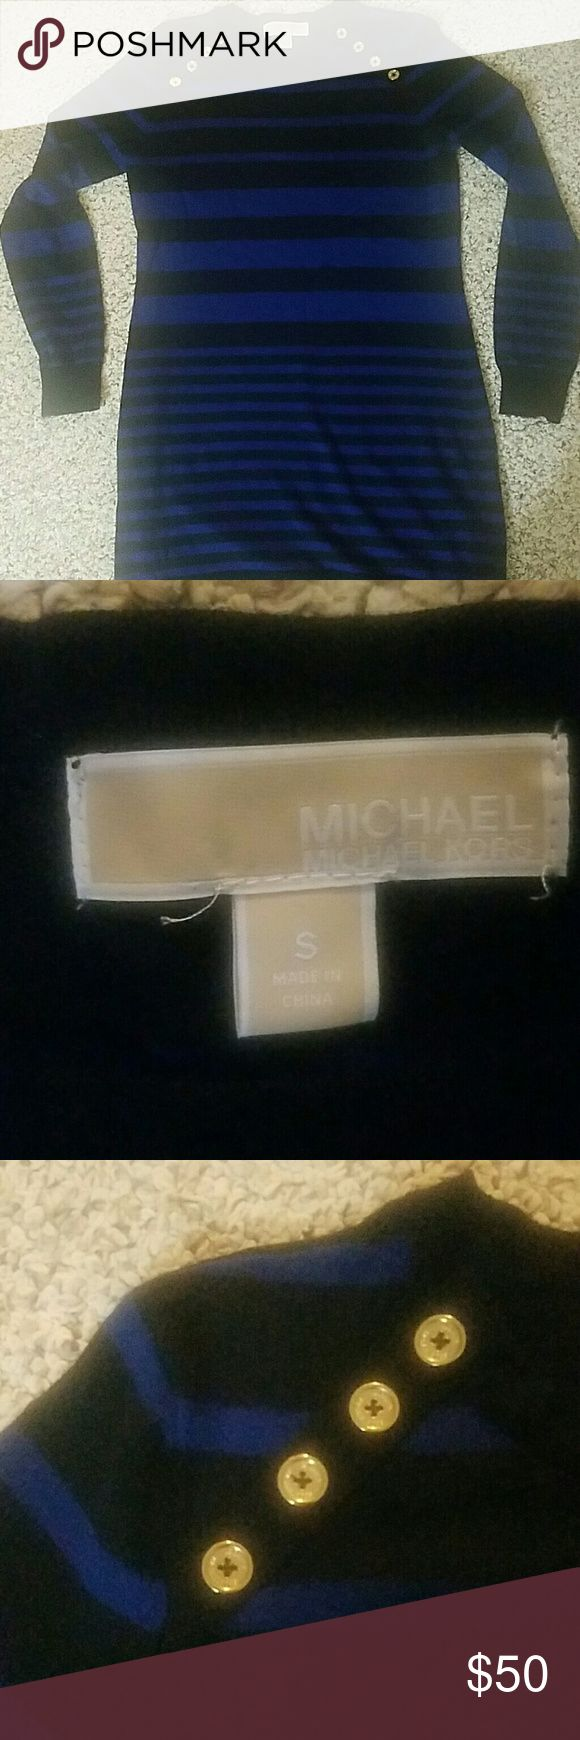 Michael Kors Small Black and Blue Long Sleeve Michael Kors black and blue striped long sleeve with golden buttons. Looks AMAZING with black leggings and boots. Perfect for fall and winter! Michael Kors Tops Tees - Long Sleeve